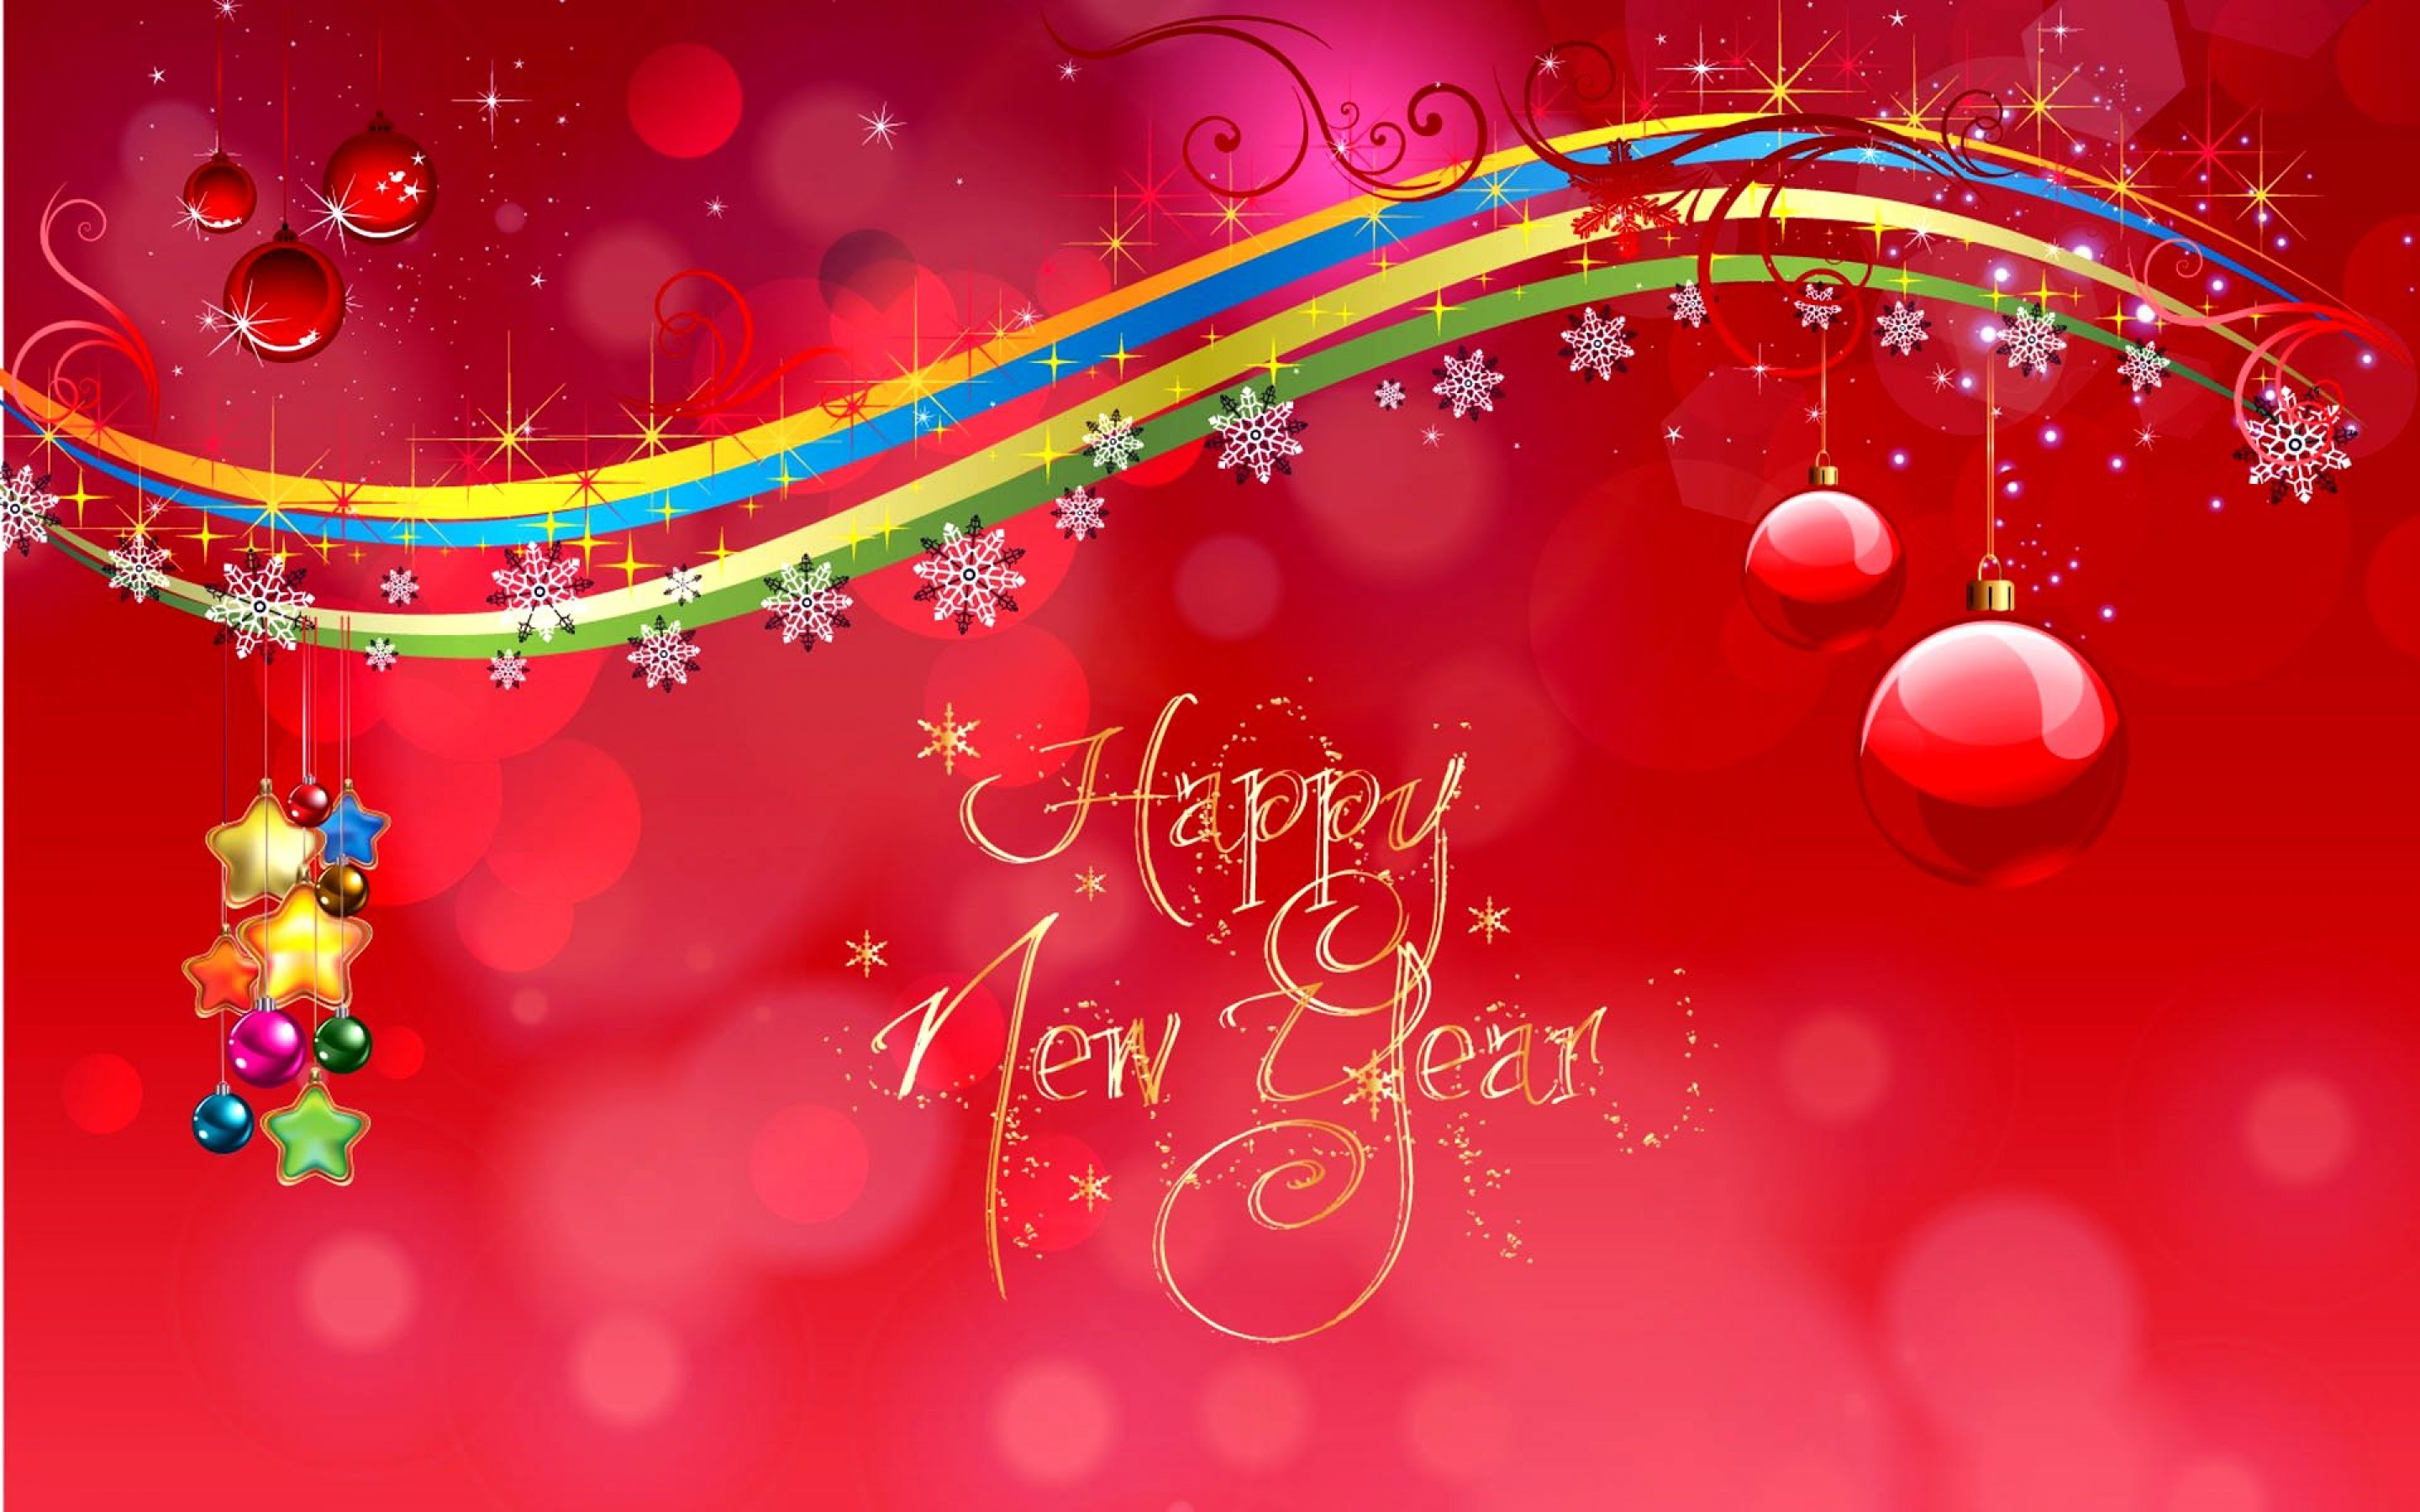 Happy New Year Wishes Greetings Hd Pc Desktop Wallpaper